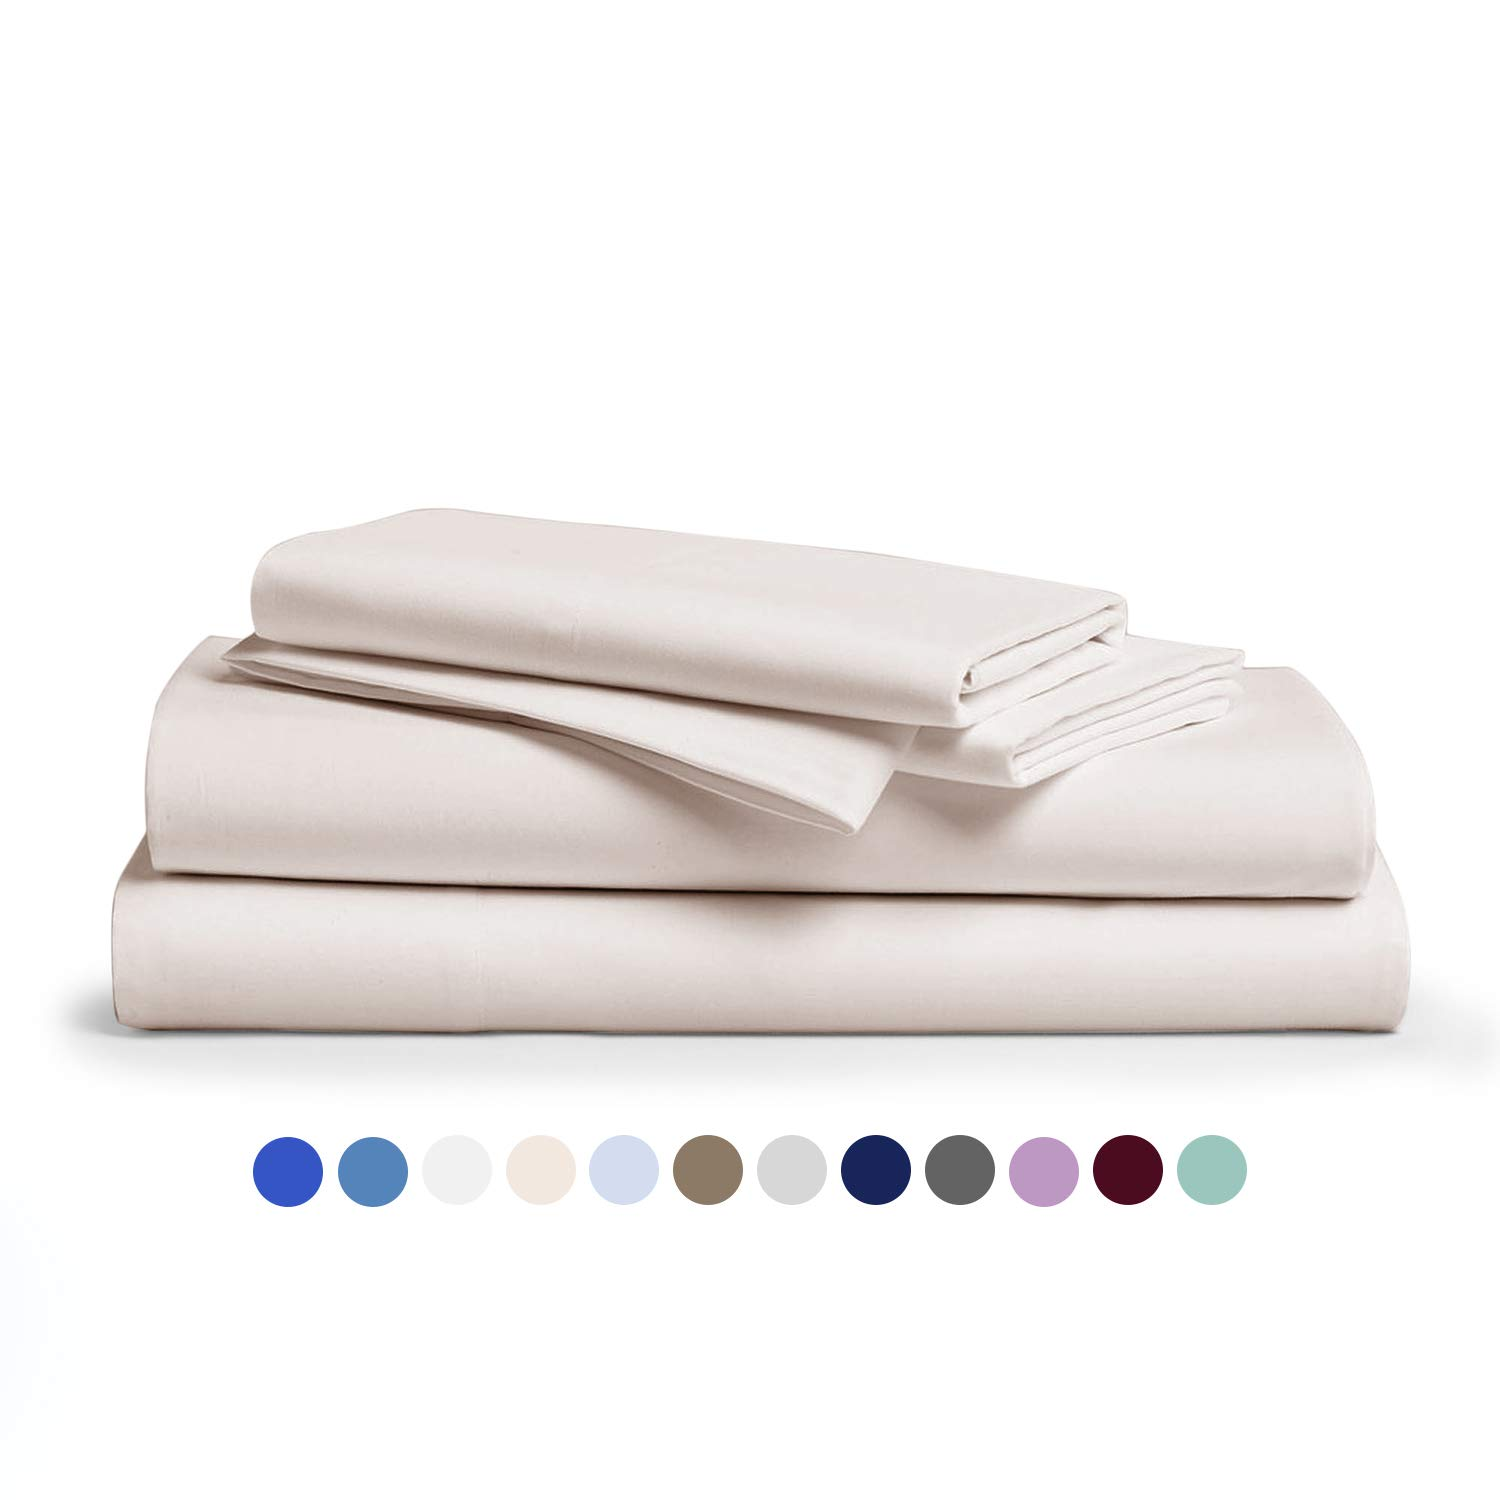 Comfy Sheets 100% Egyptian Cotton Sheets - 1000 Thread Count 4 Pc King Cream Bed Sheet with Pillowcases, Premium Hotel Quality Fits Mattress Up to 18'' Deep Pocket.